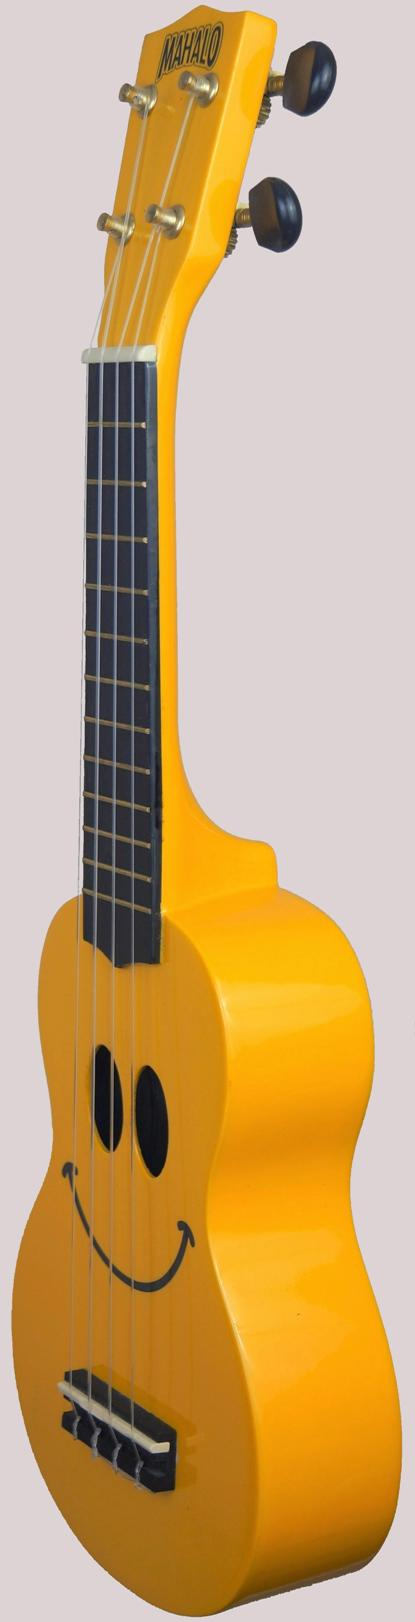 the first smiley Ukulele